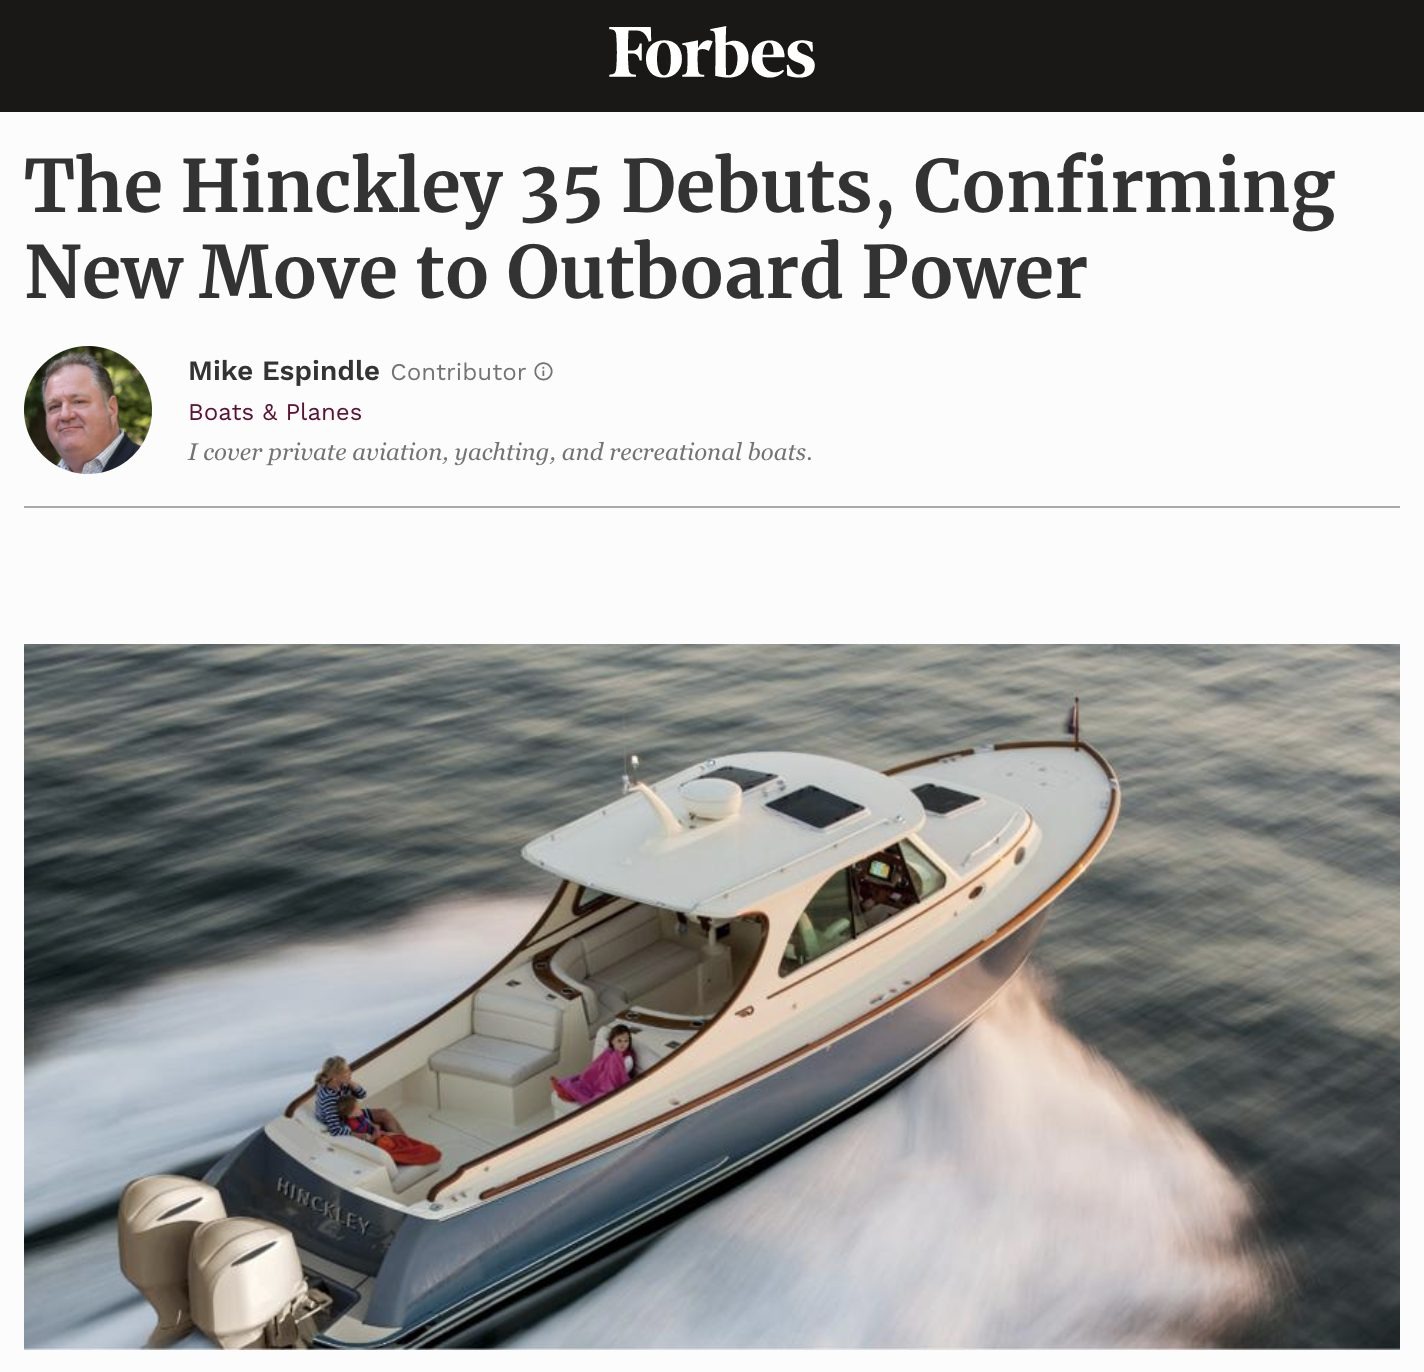 The Hinckley 35 Debuts, Confirming New Move to Outboard Power